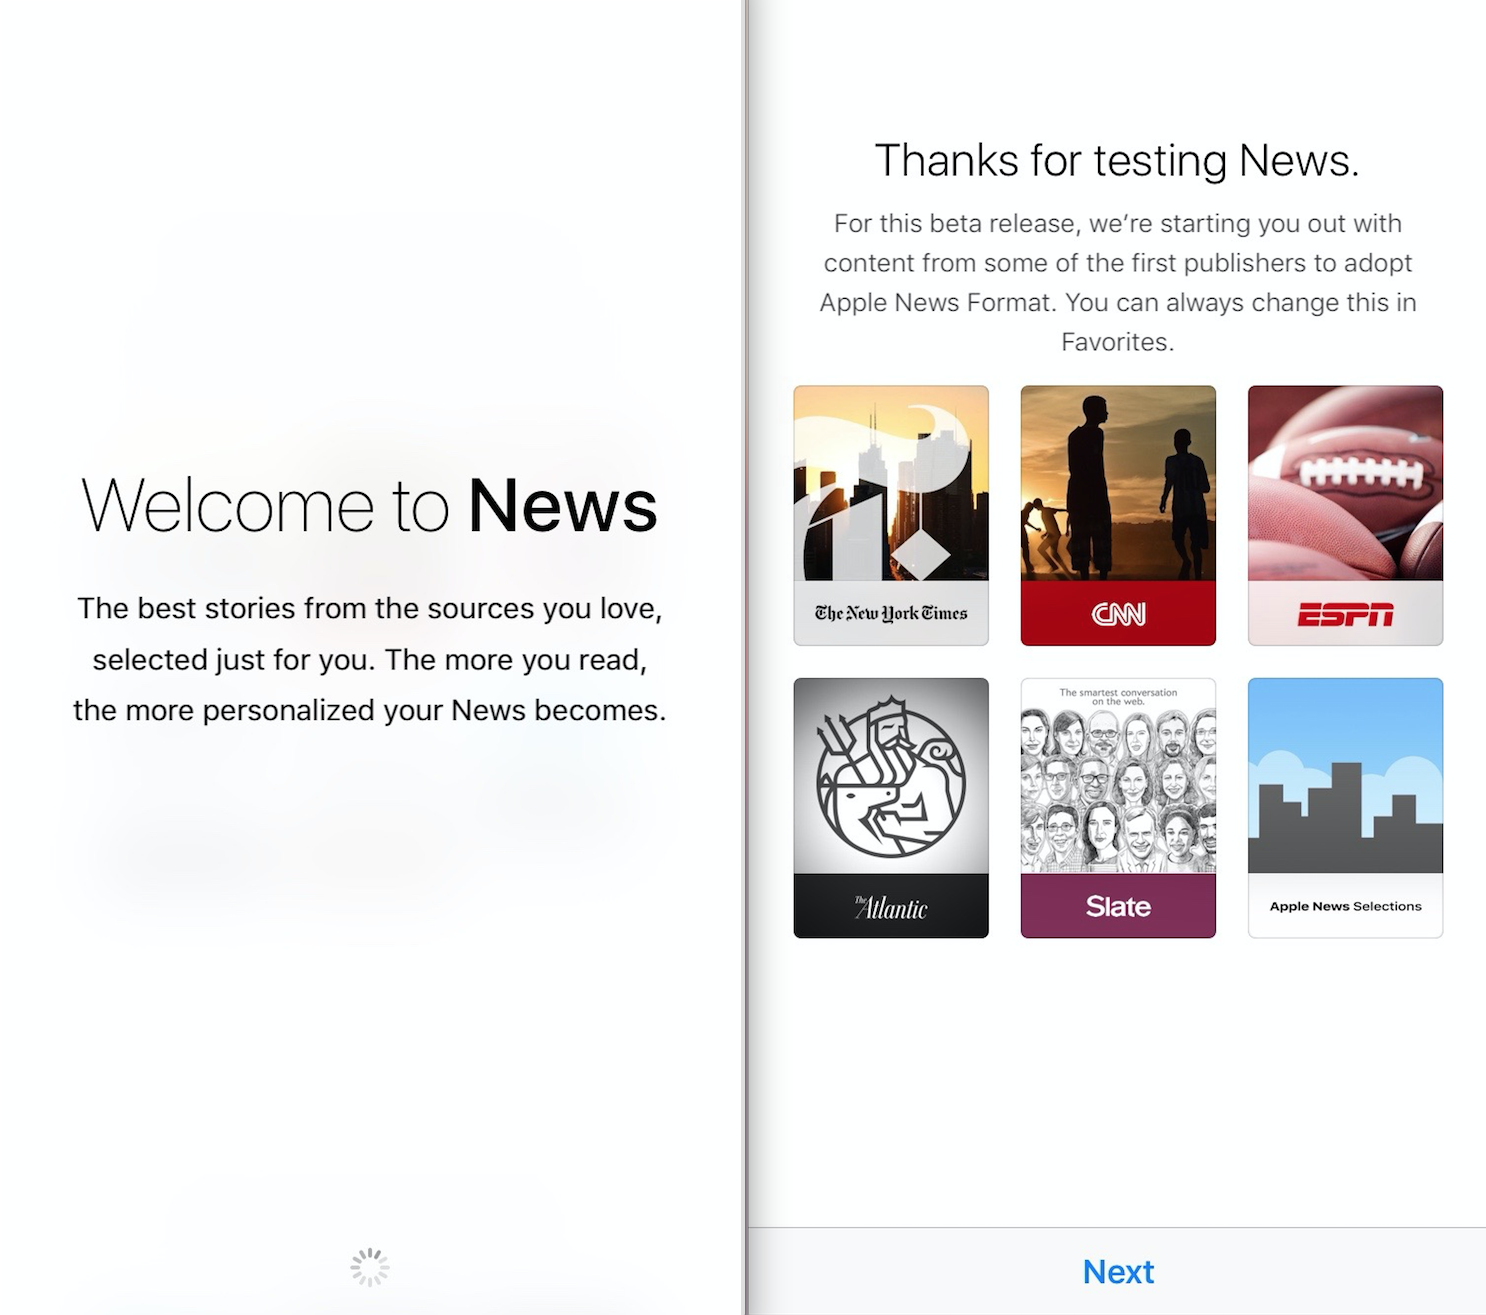 9 Latest News: How To Enable IOS 9 News App If You're Outside US